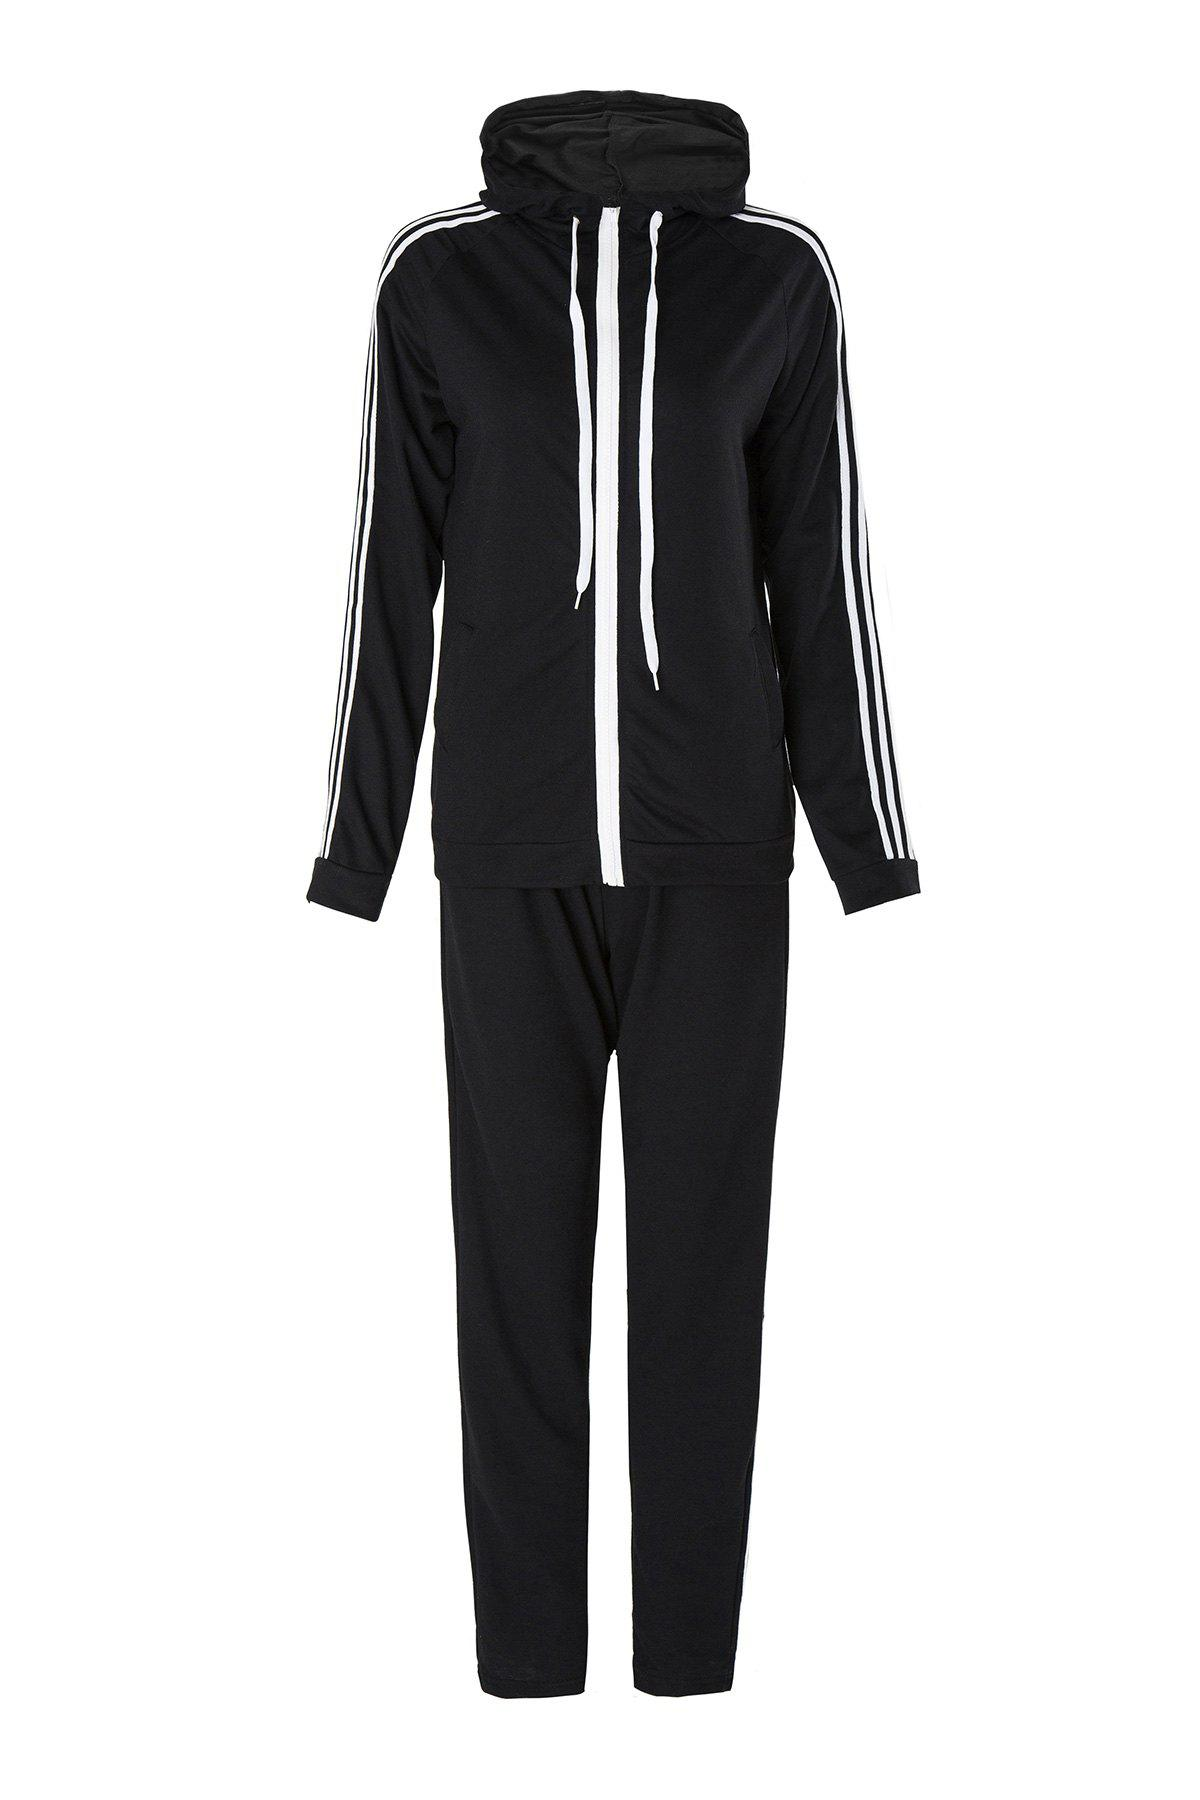 Shops Active Hooded Long Sleeve Striped Jacket + Waist Drawstring Pants Women's Activewear Suit